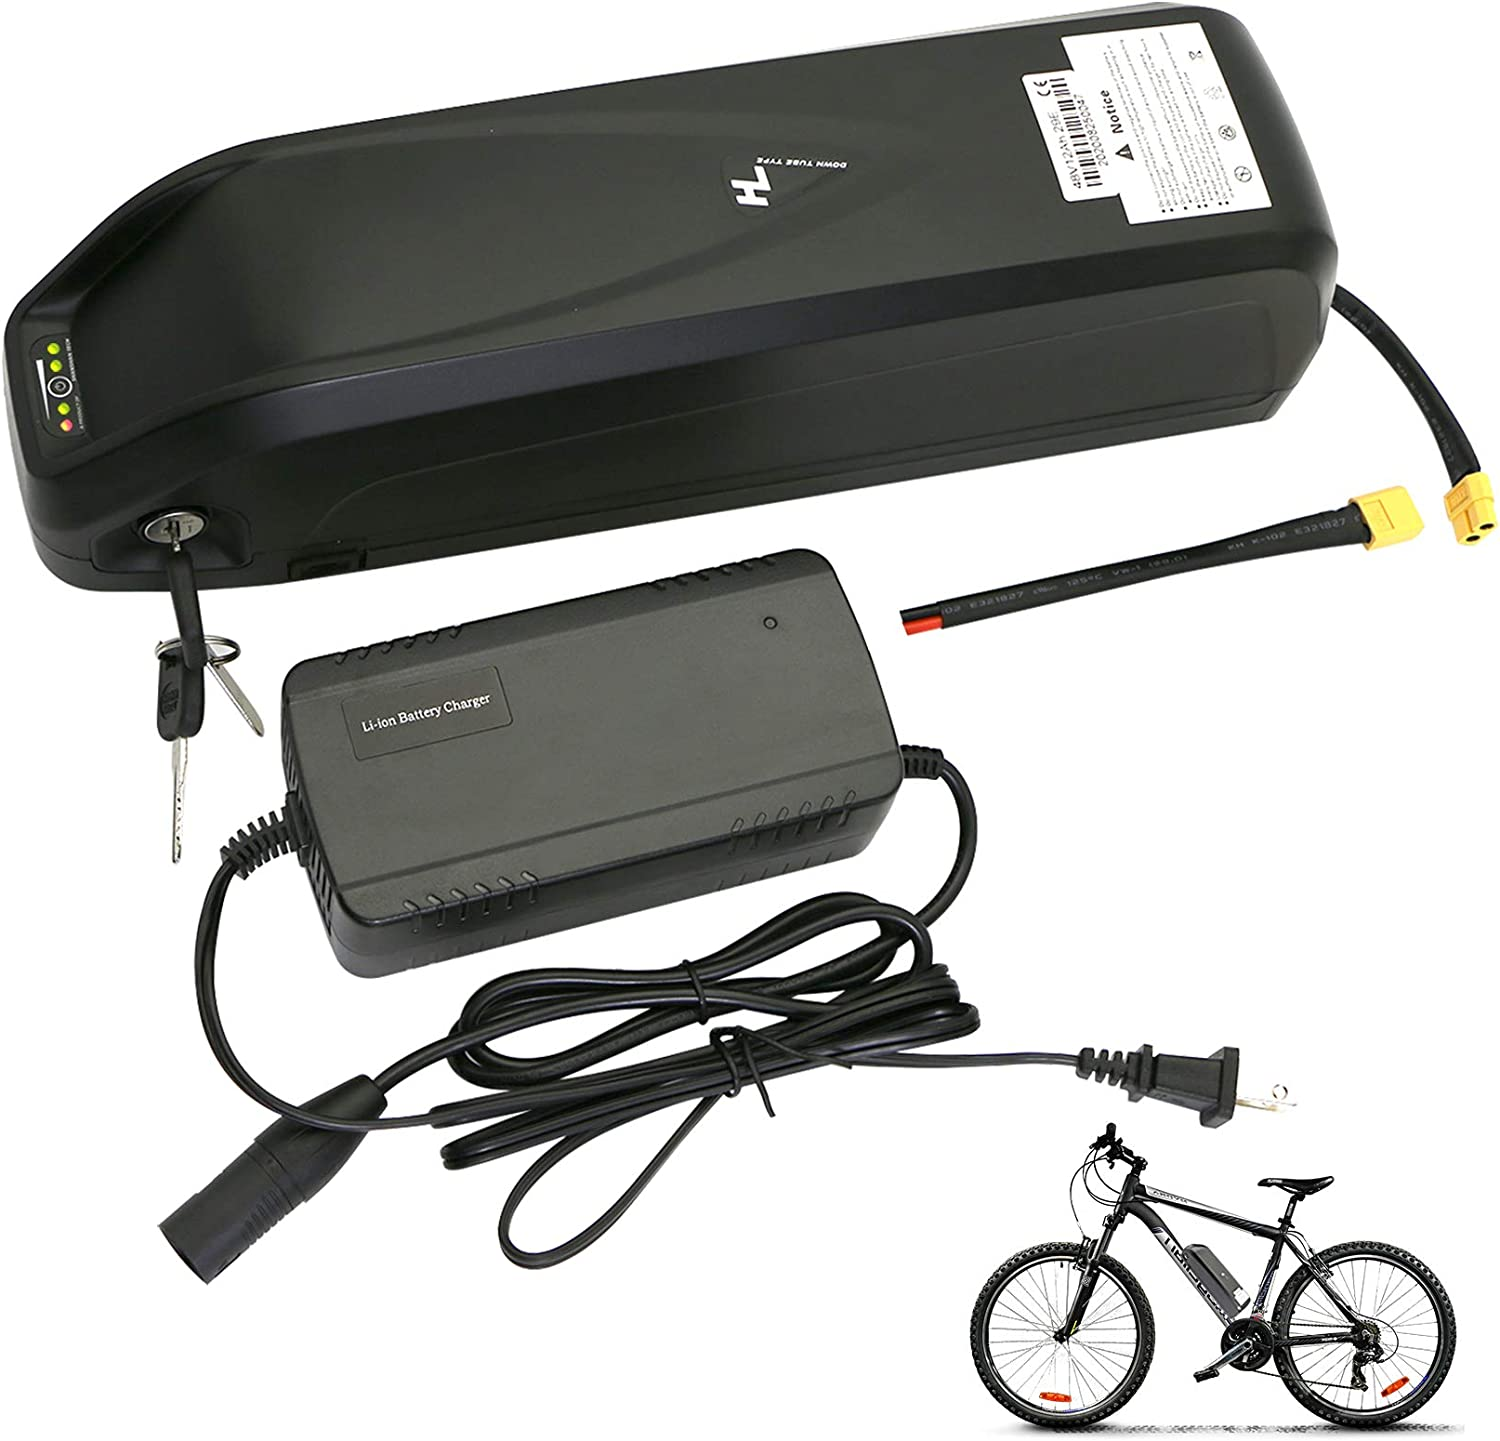 VOKUA Ebike Battery 36V 17.4Ah 48V 12Ah//14.5 Ah//17.5Ah 18650 Cell Hailong Li-ion Battery with BMS Powerful with Charger for BAFANG BBS01B BBS02B BBSHD Tongsheng Electric Bicycle Conversion Kit